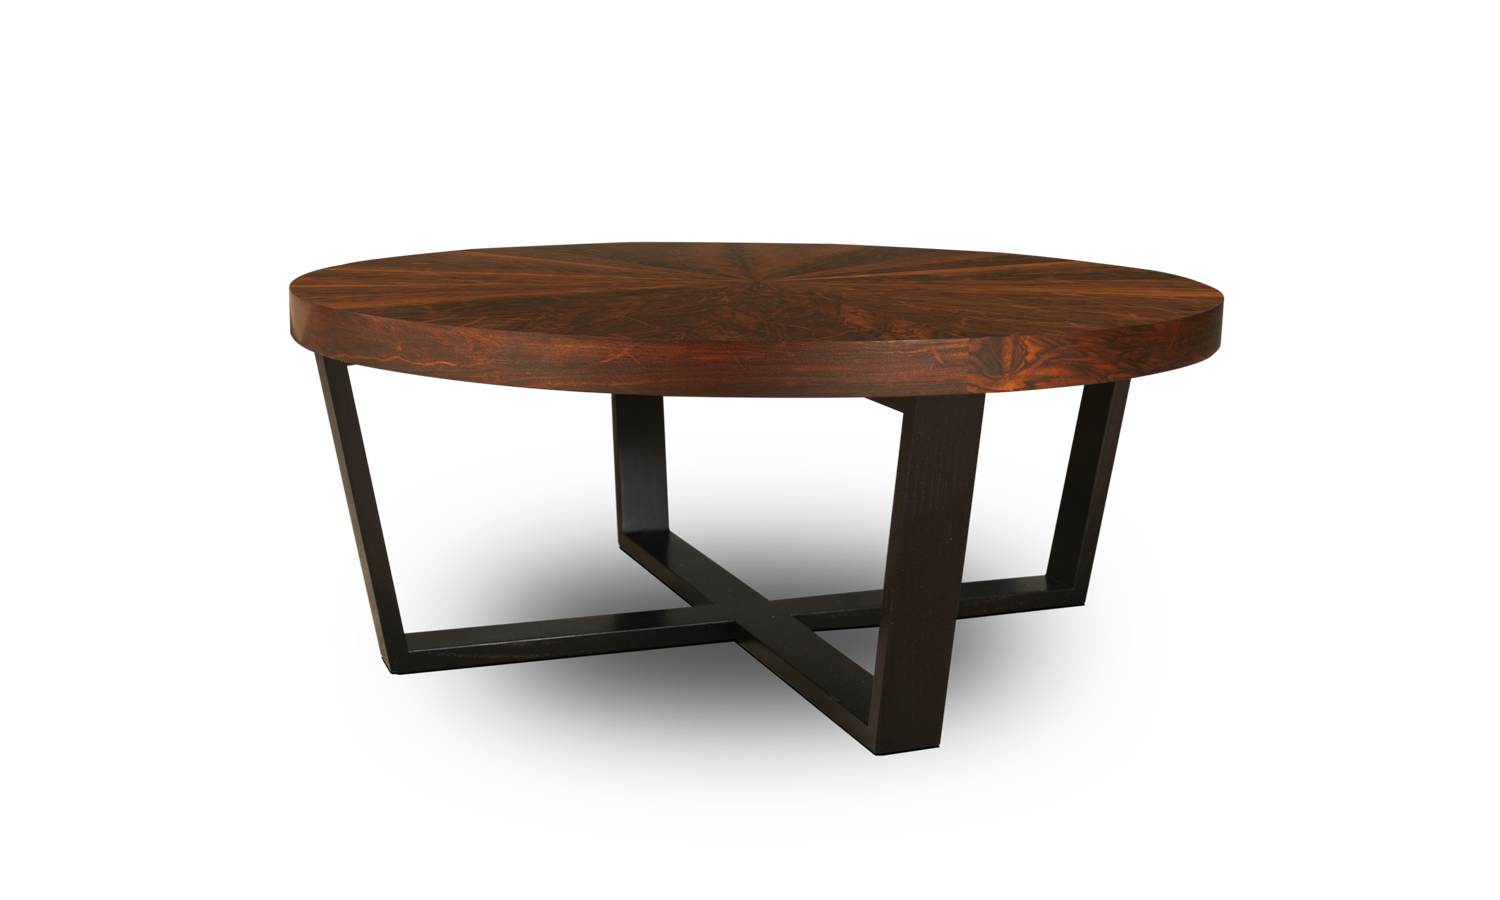 coffe_table_Lusitan_hamiltonconte_packshot2.png